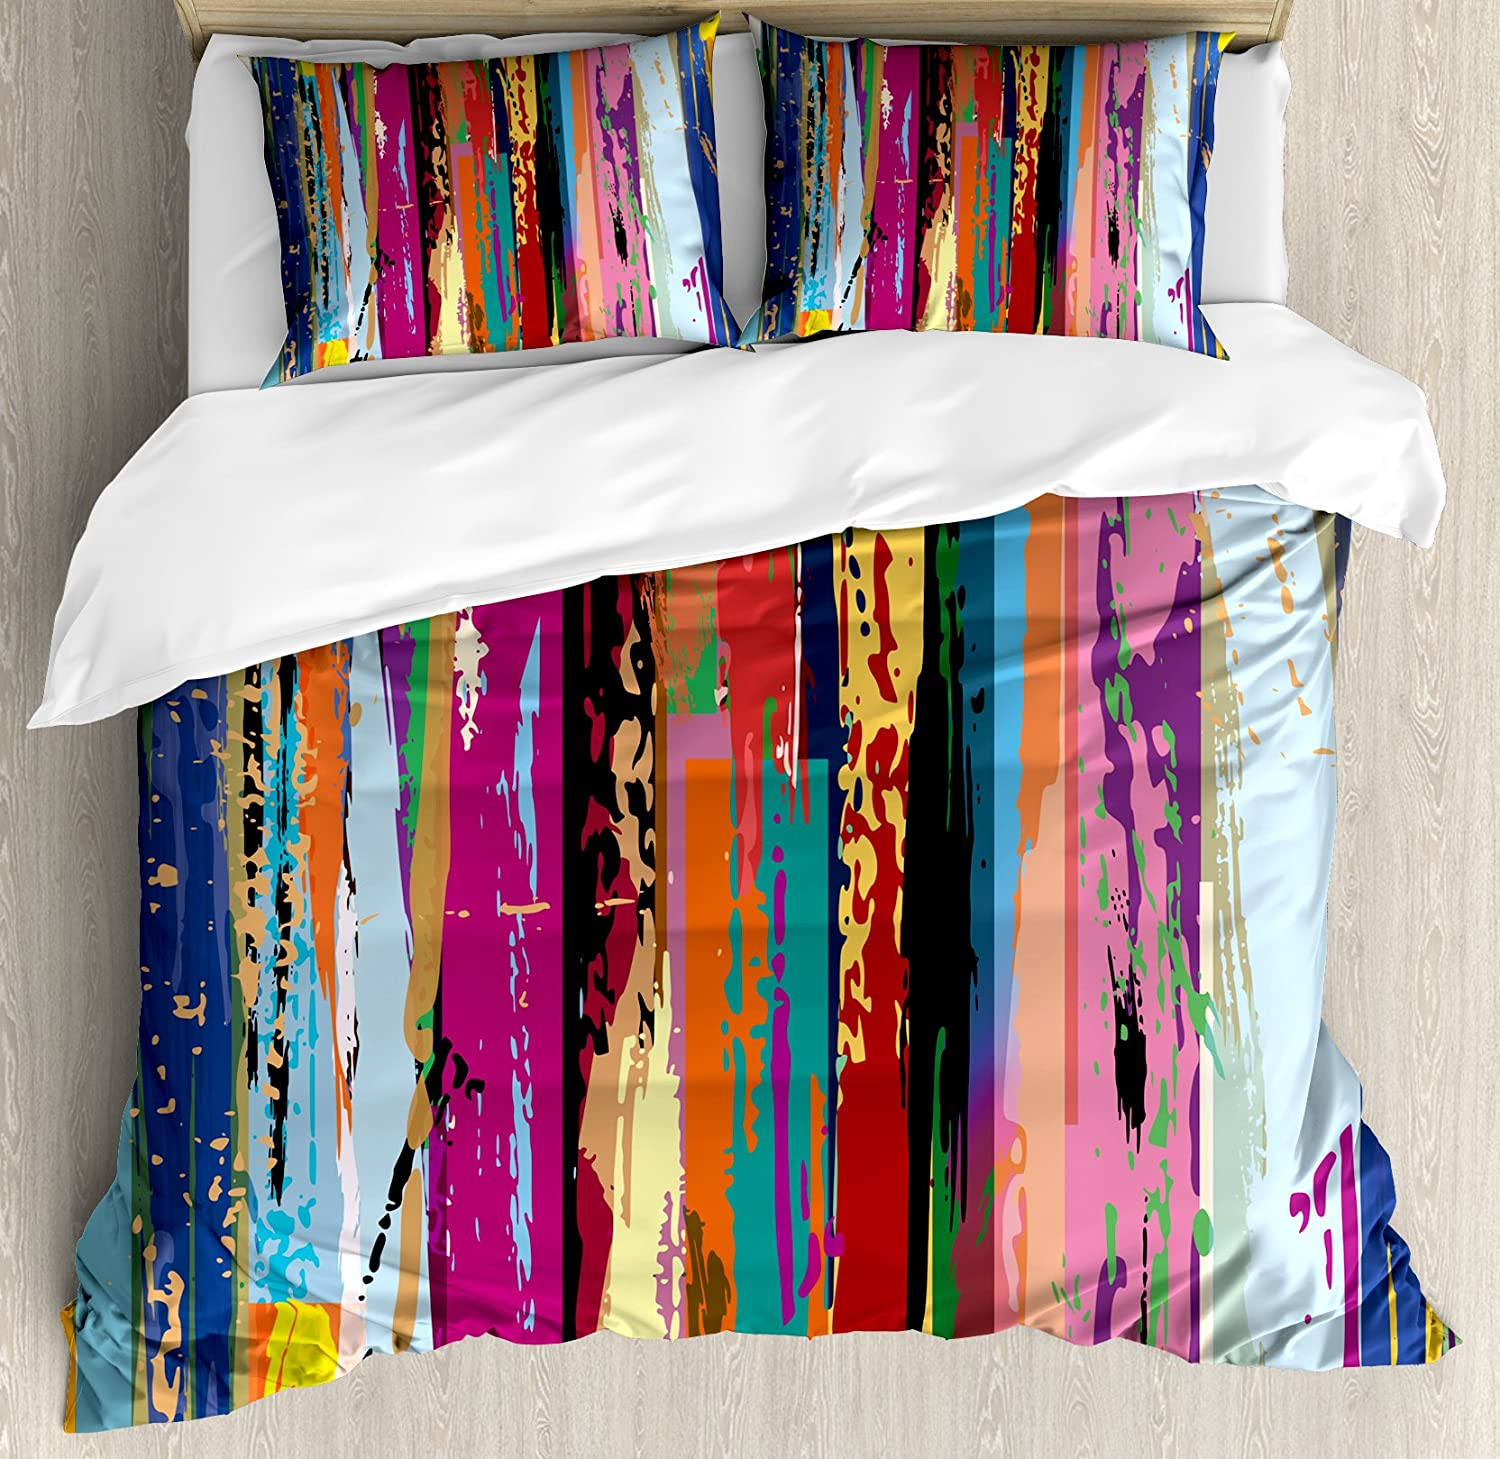 Art Vibrant Rainbow Design Tainted Pattern, Decorative 3 Piece Bedding Set